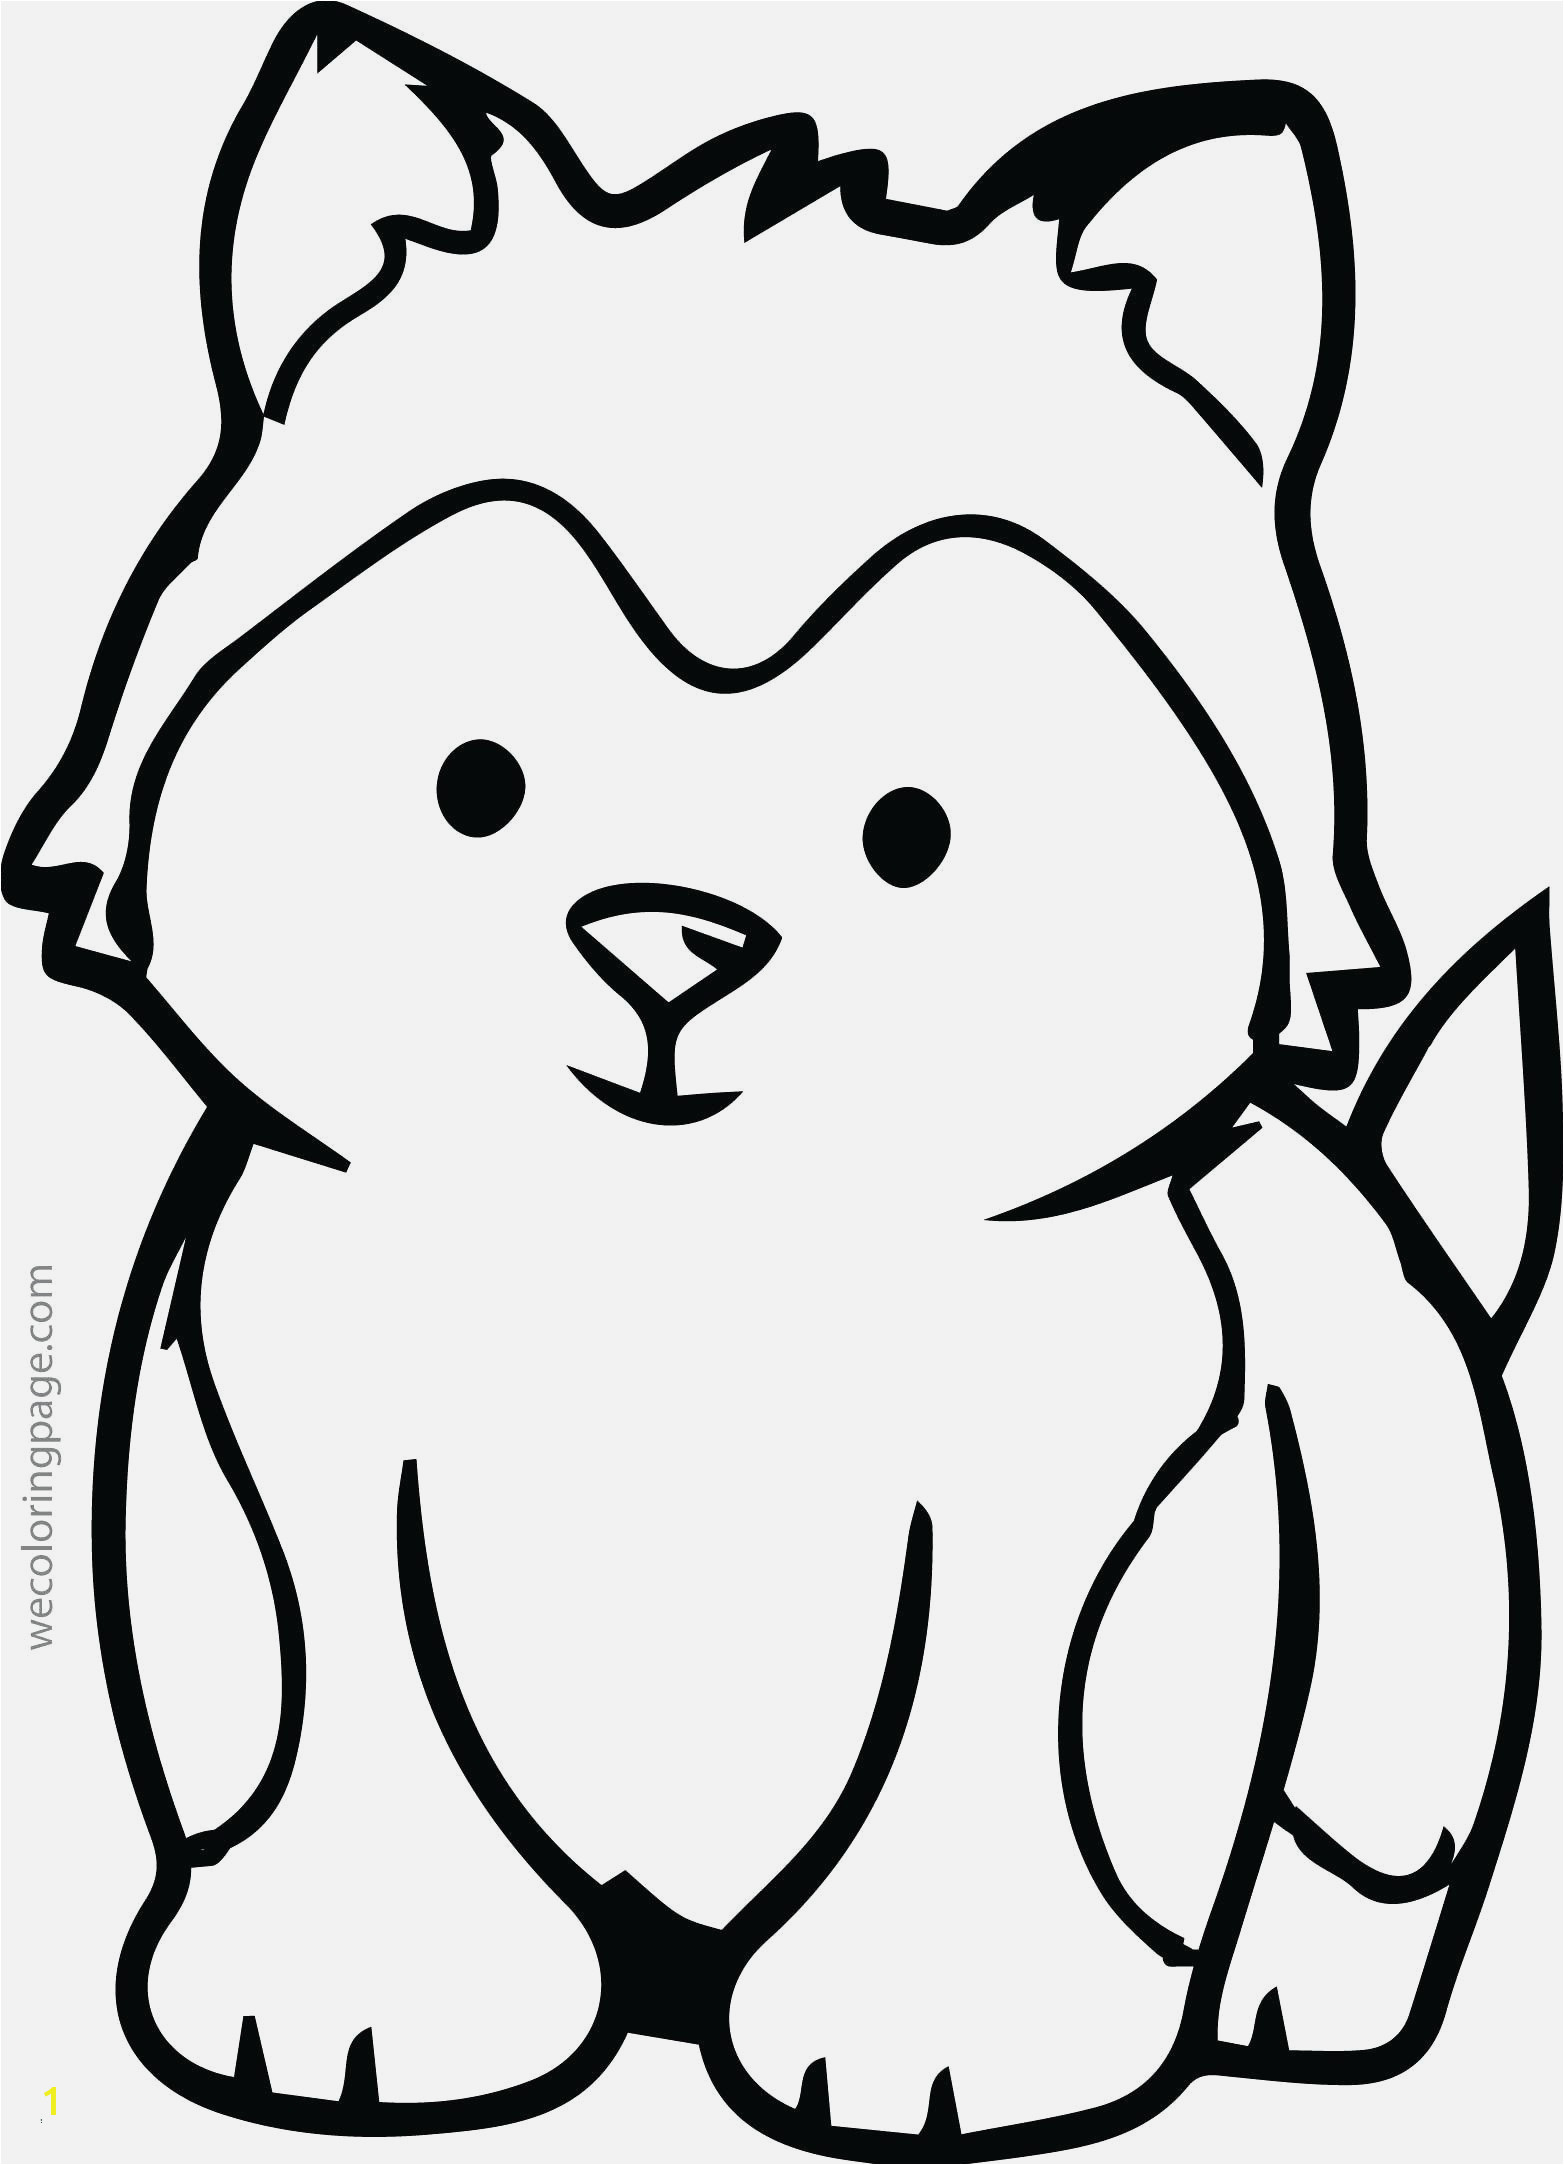 Free Animal Coloring Pages Printable Picture Coloring Lovable Animal Coloring Pages Elegant Husky Free Animal